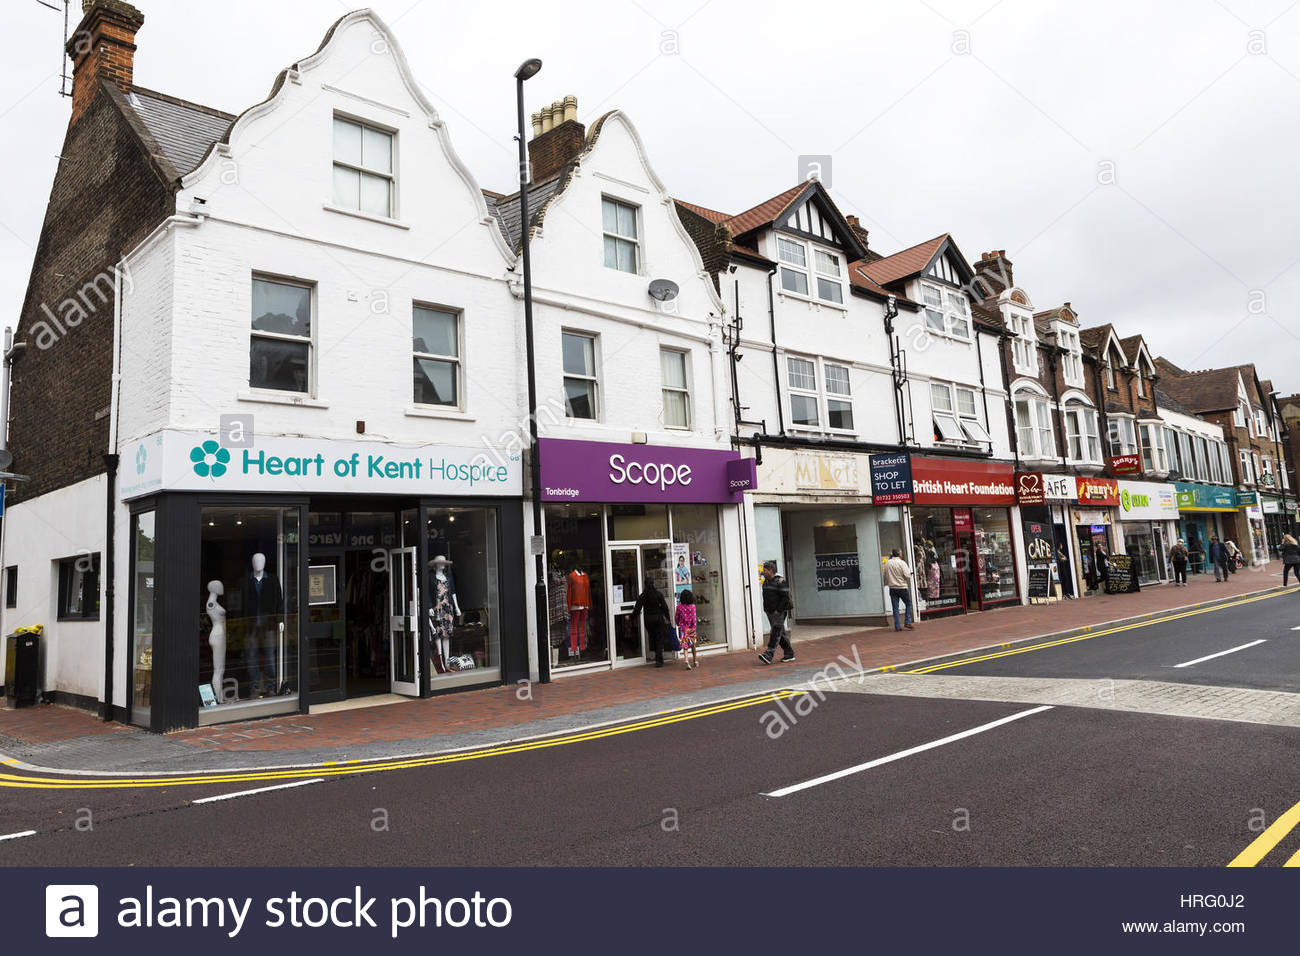 Parade of shops containing cafes and charity shops, Tonbridge High Street, Kent, UK - Stock Image